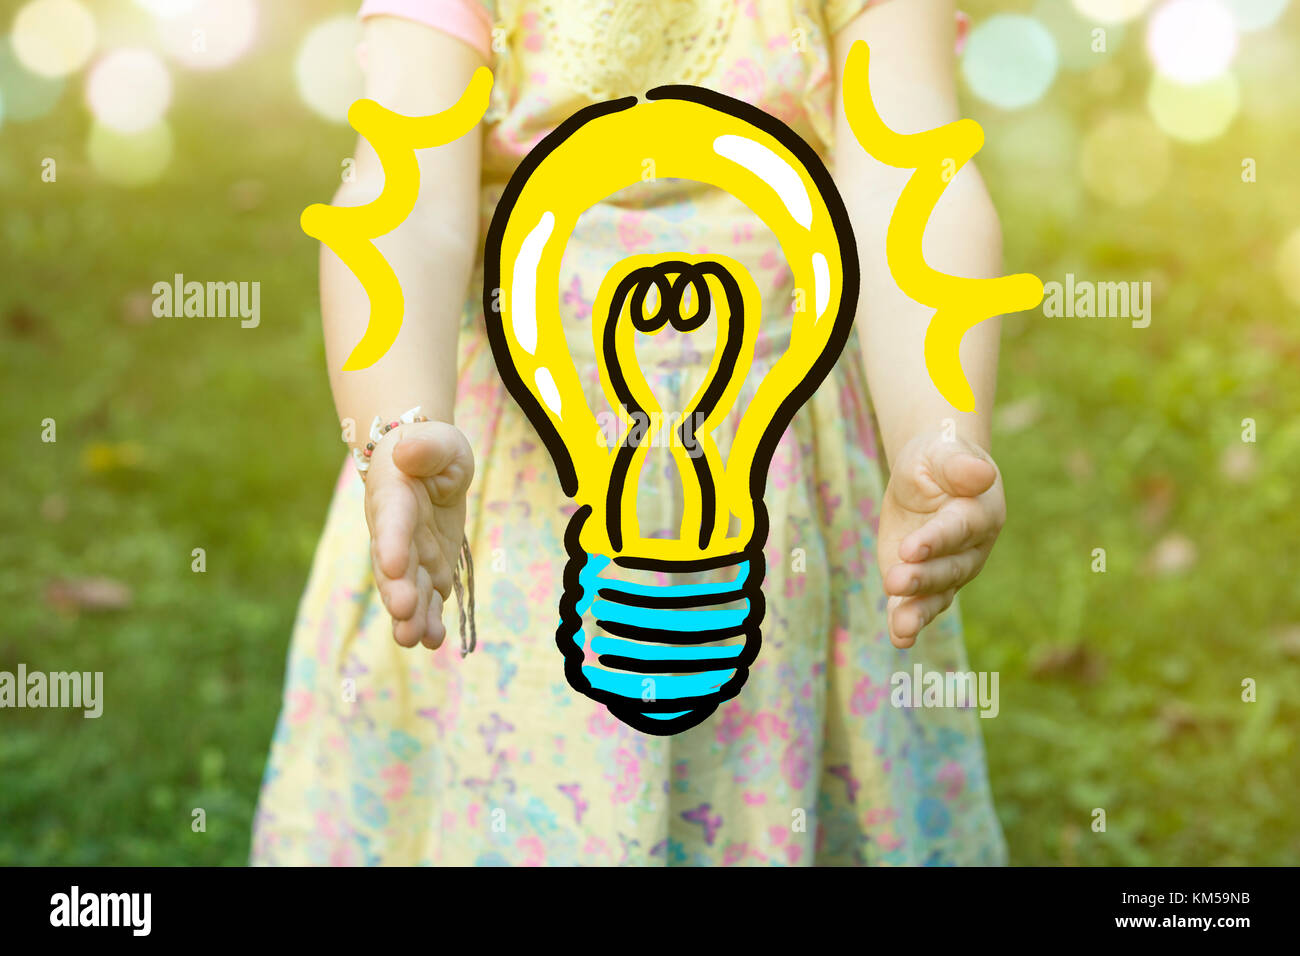 Child holding a light bulb drawing as idea concept, outdoors on a sunny day. Stock Photo